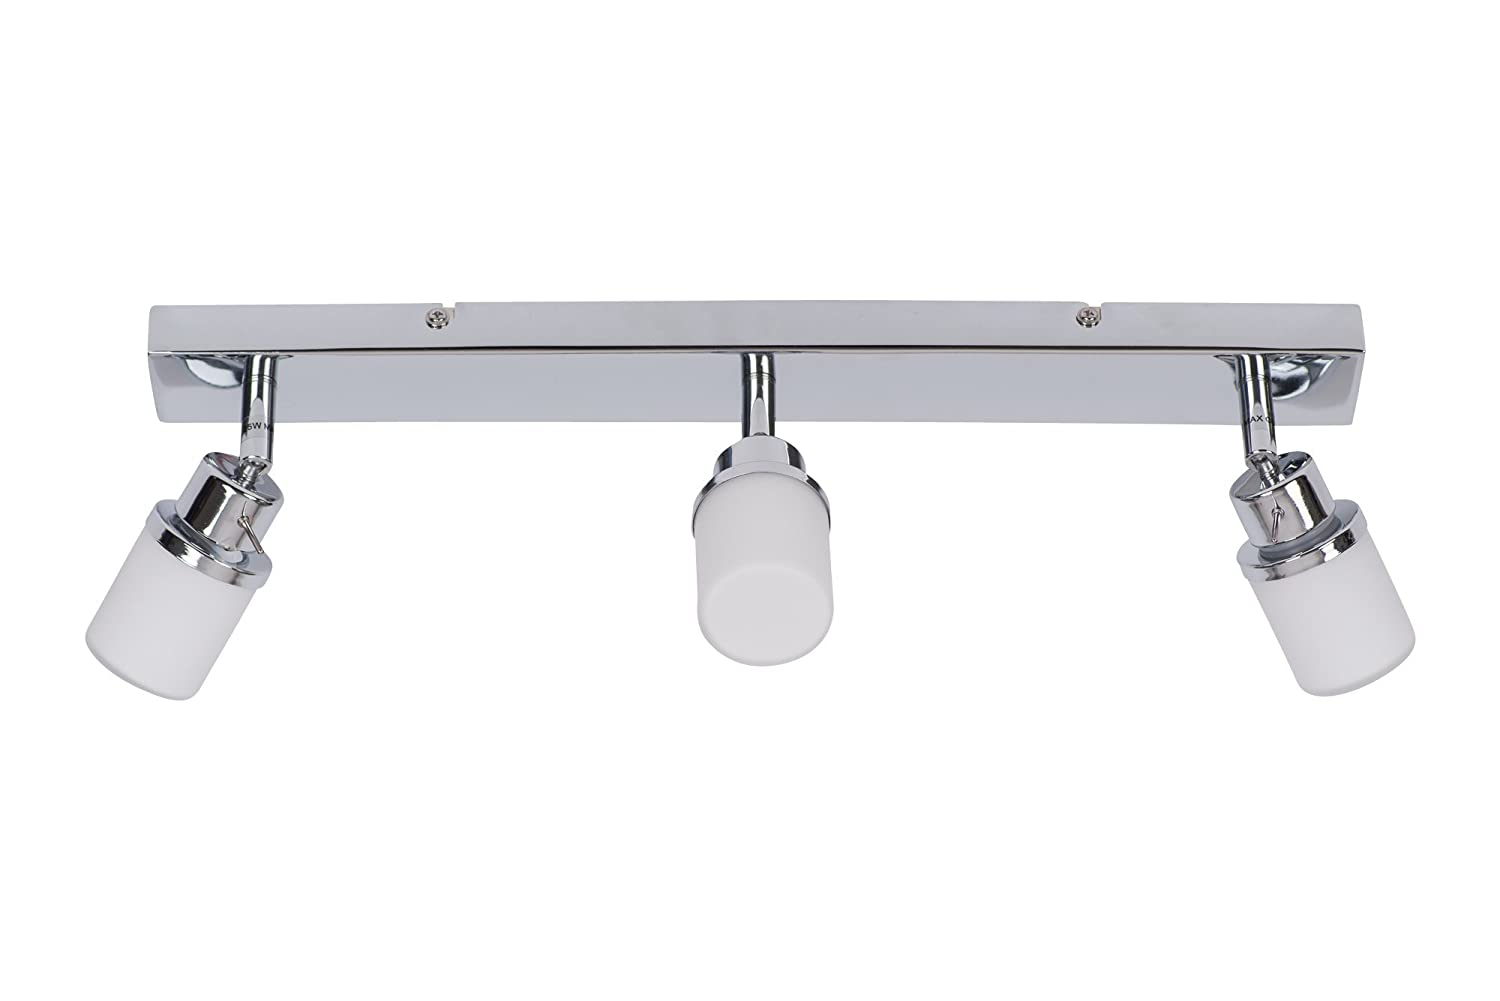 Chrome and Opal Glass Bathroom Ceiling 3 Way Spot Light Plate First Choice Lighting